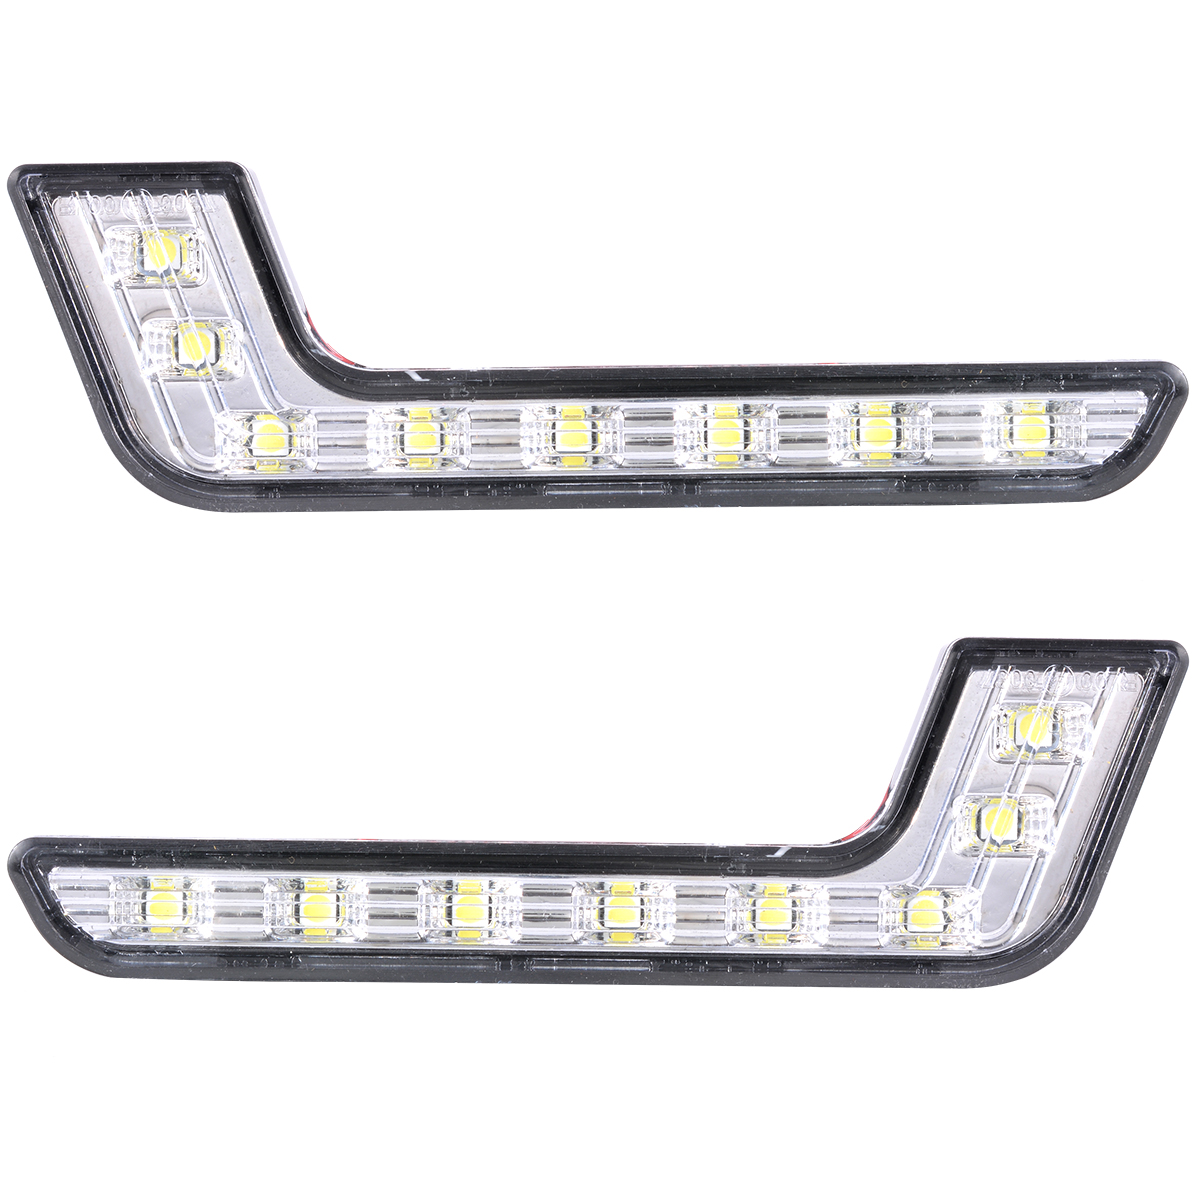 2x 6000k Car Daytime Running Drl Bright Driving Day Light Head Lamp 8 Led White Ma145